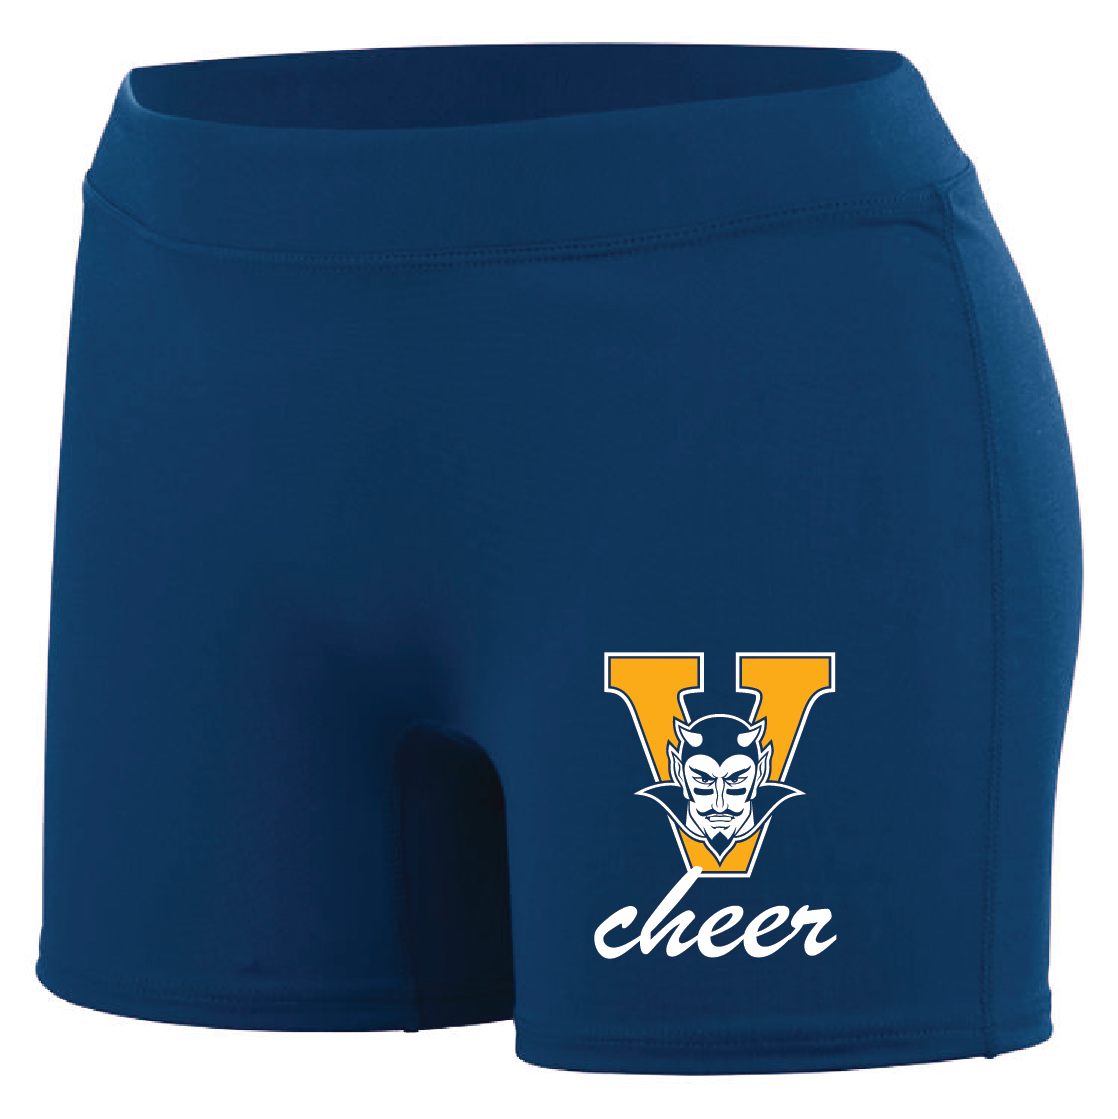 Design1 Fitted Shorts